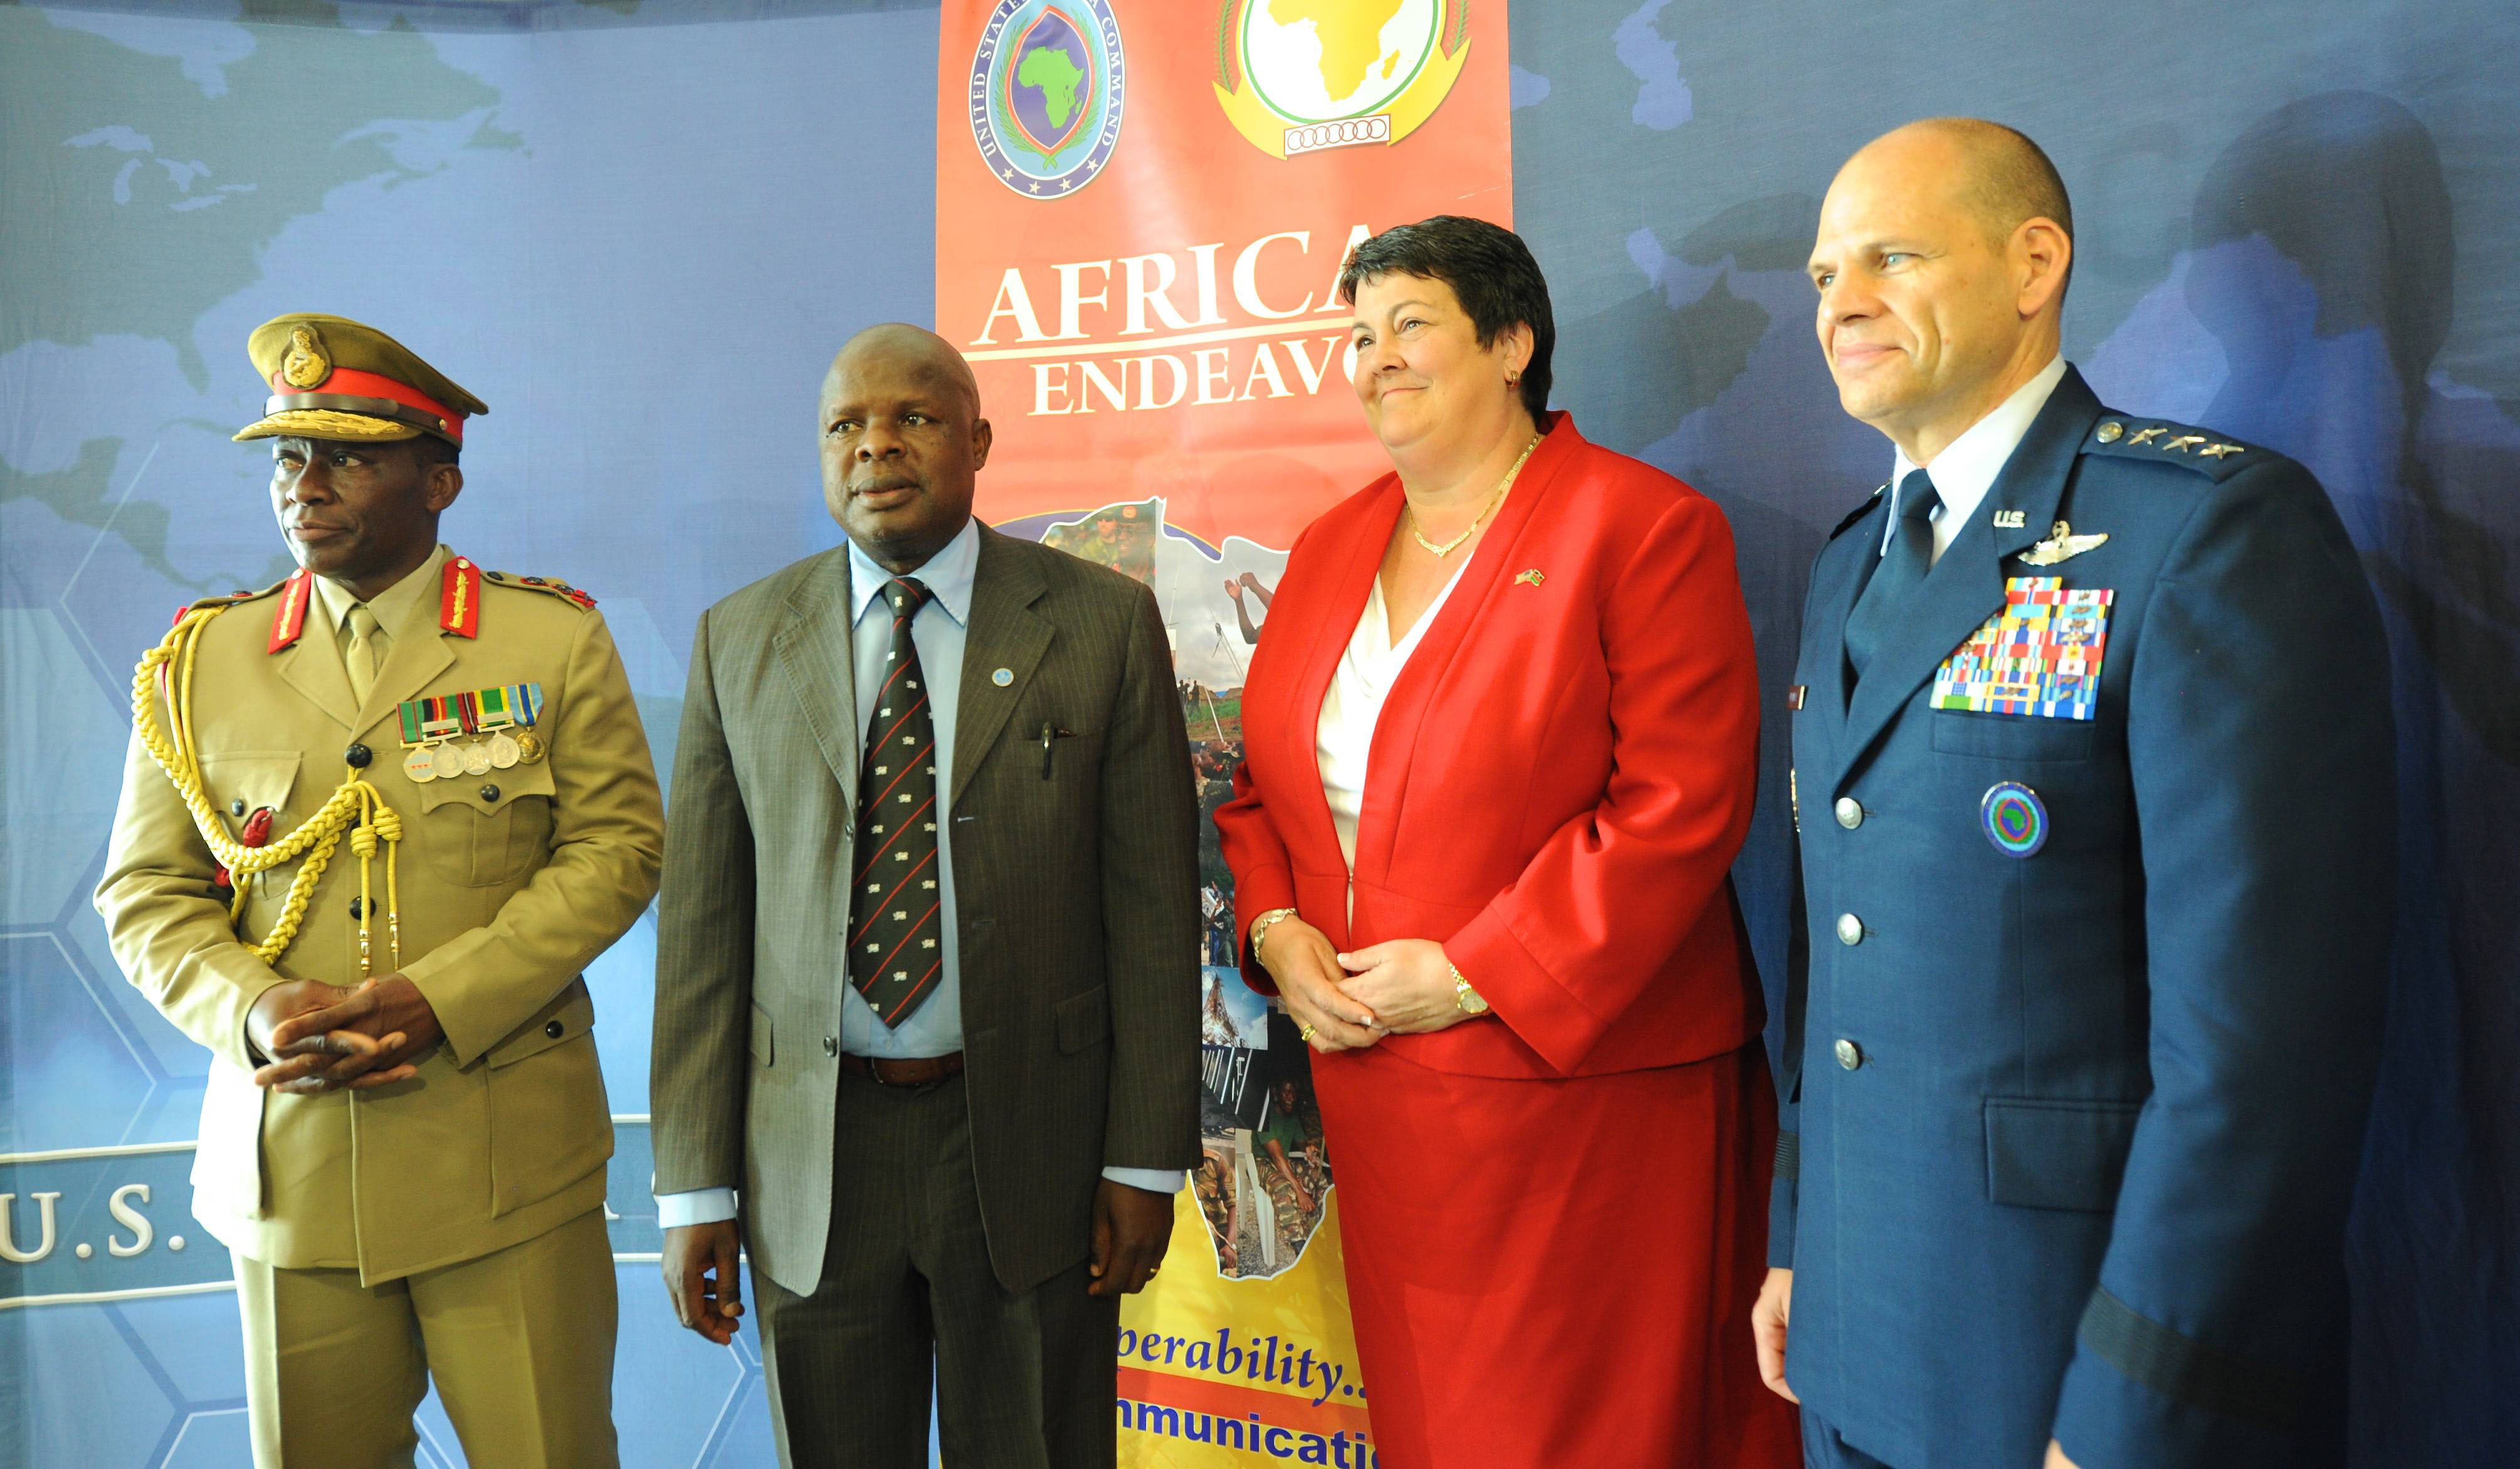 LILONGWE, Malawi - (from left to right) Gen. Griffin S. Phiri, Commander, Malawi Defense Force; Hon. Everton Chimulirenji, Malawi Deputy Minister for Defence MP; Hon. Virginia Palmer, U.S. Ambassador to Malawi; and Lt. Gen. James C. Vechery, U.S. Africa Command Deputy to the Commander for Military Operations pose for an official photo following the opening ceremony for Africa Endeavor 2017. Africa Endeavor is an annual senior leader and communications symposium and technology expo designed to develop standardized, multinational communications practices for peacekeeping and disaster response missions mandated by the African Union and the United Nations. (Official Photo by Navy Mass Communication Specialist 2nd Class (SW/AW) Dominique Shelton/RELEASED)